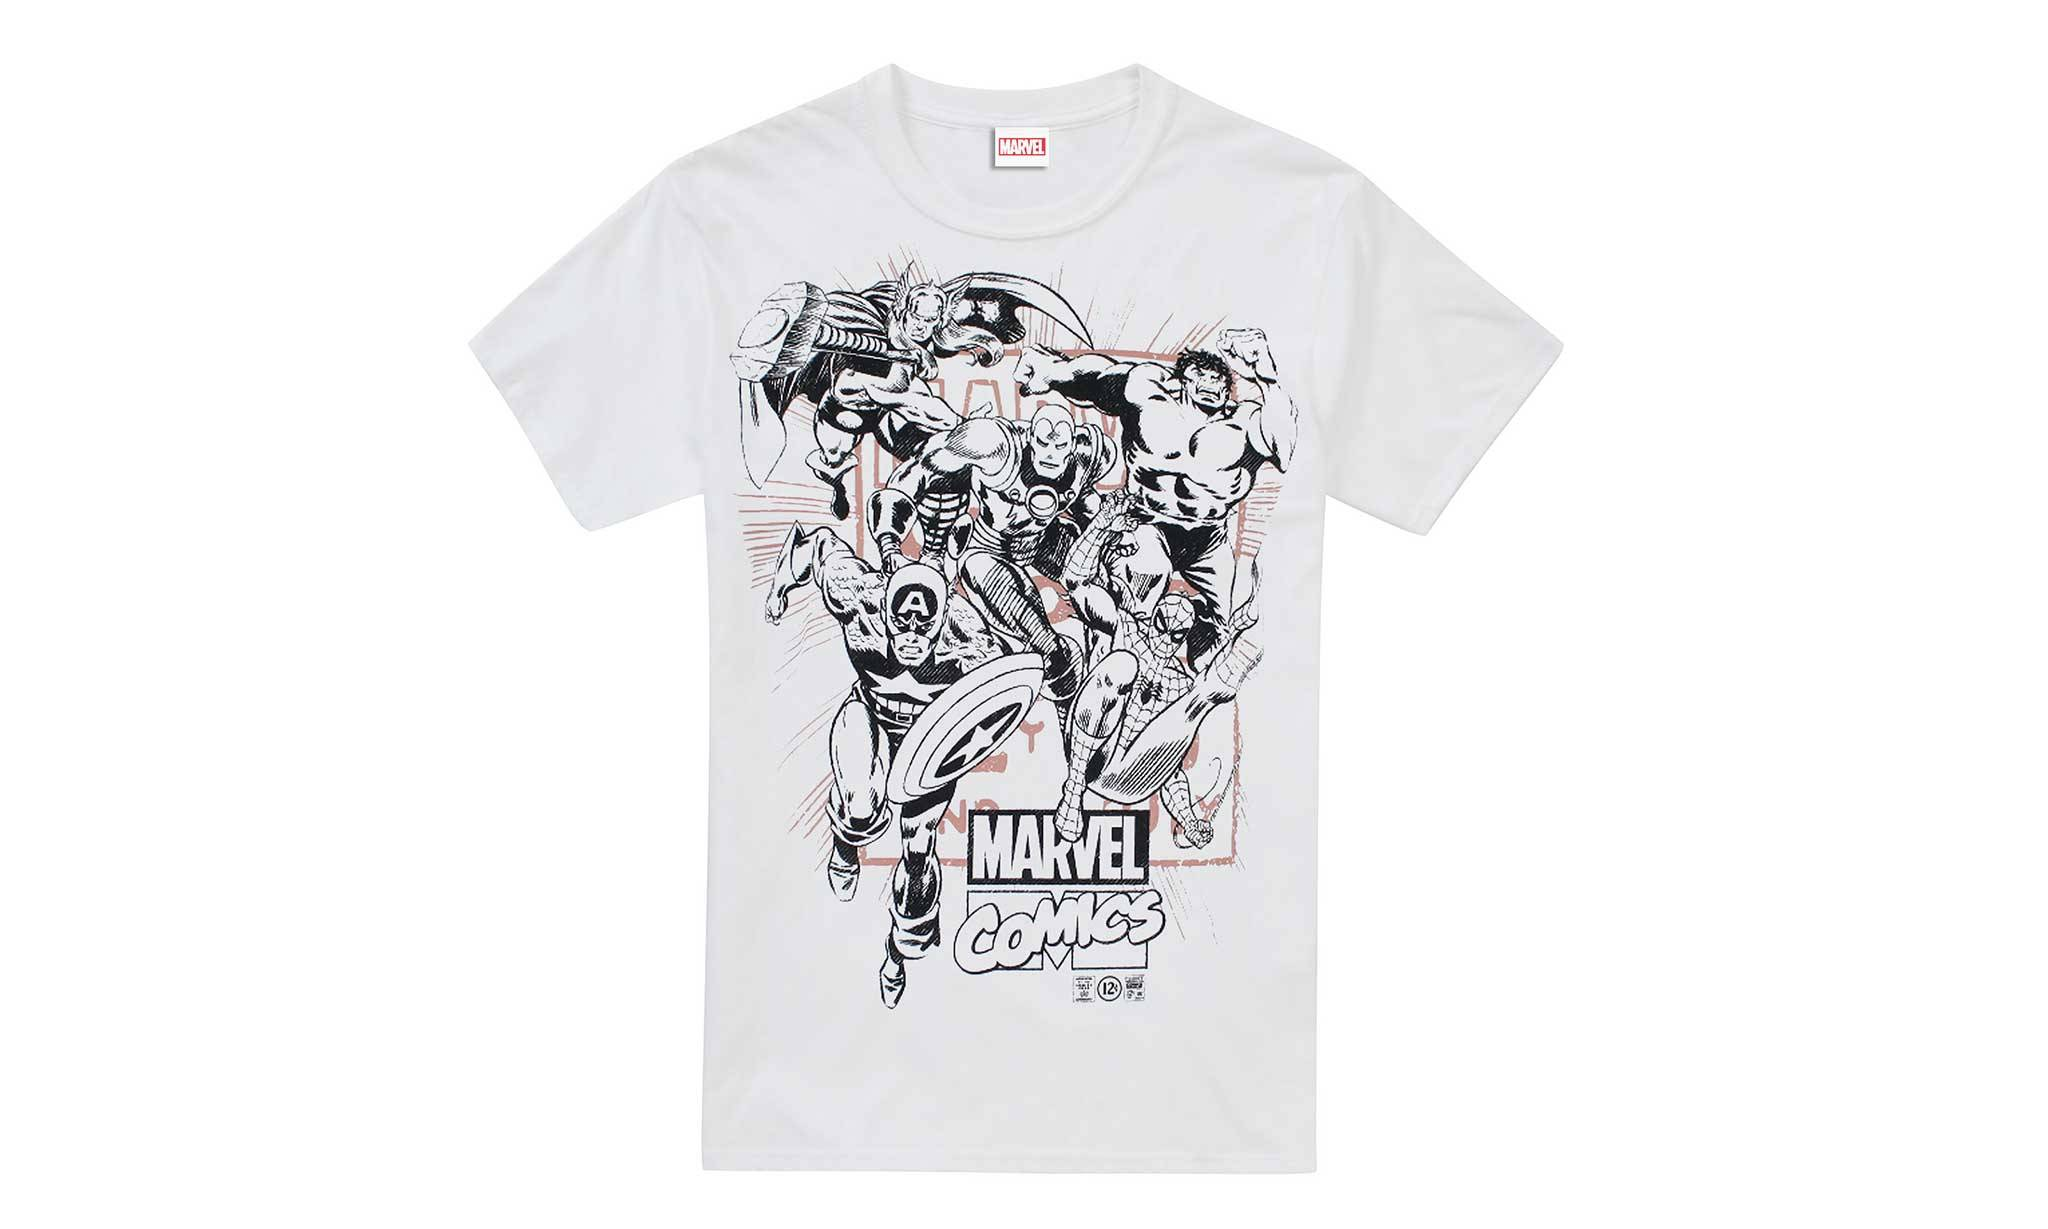 Marvel Men's T-Shirt: White Band of Heroes/Size XL